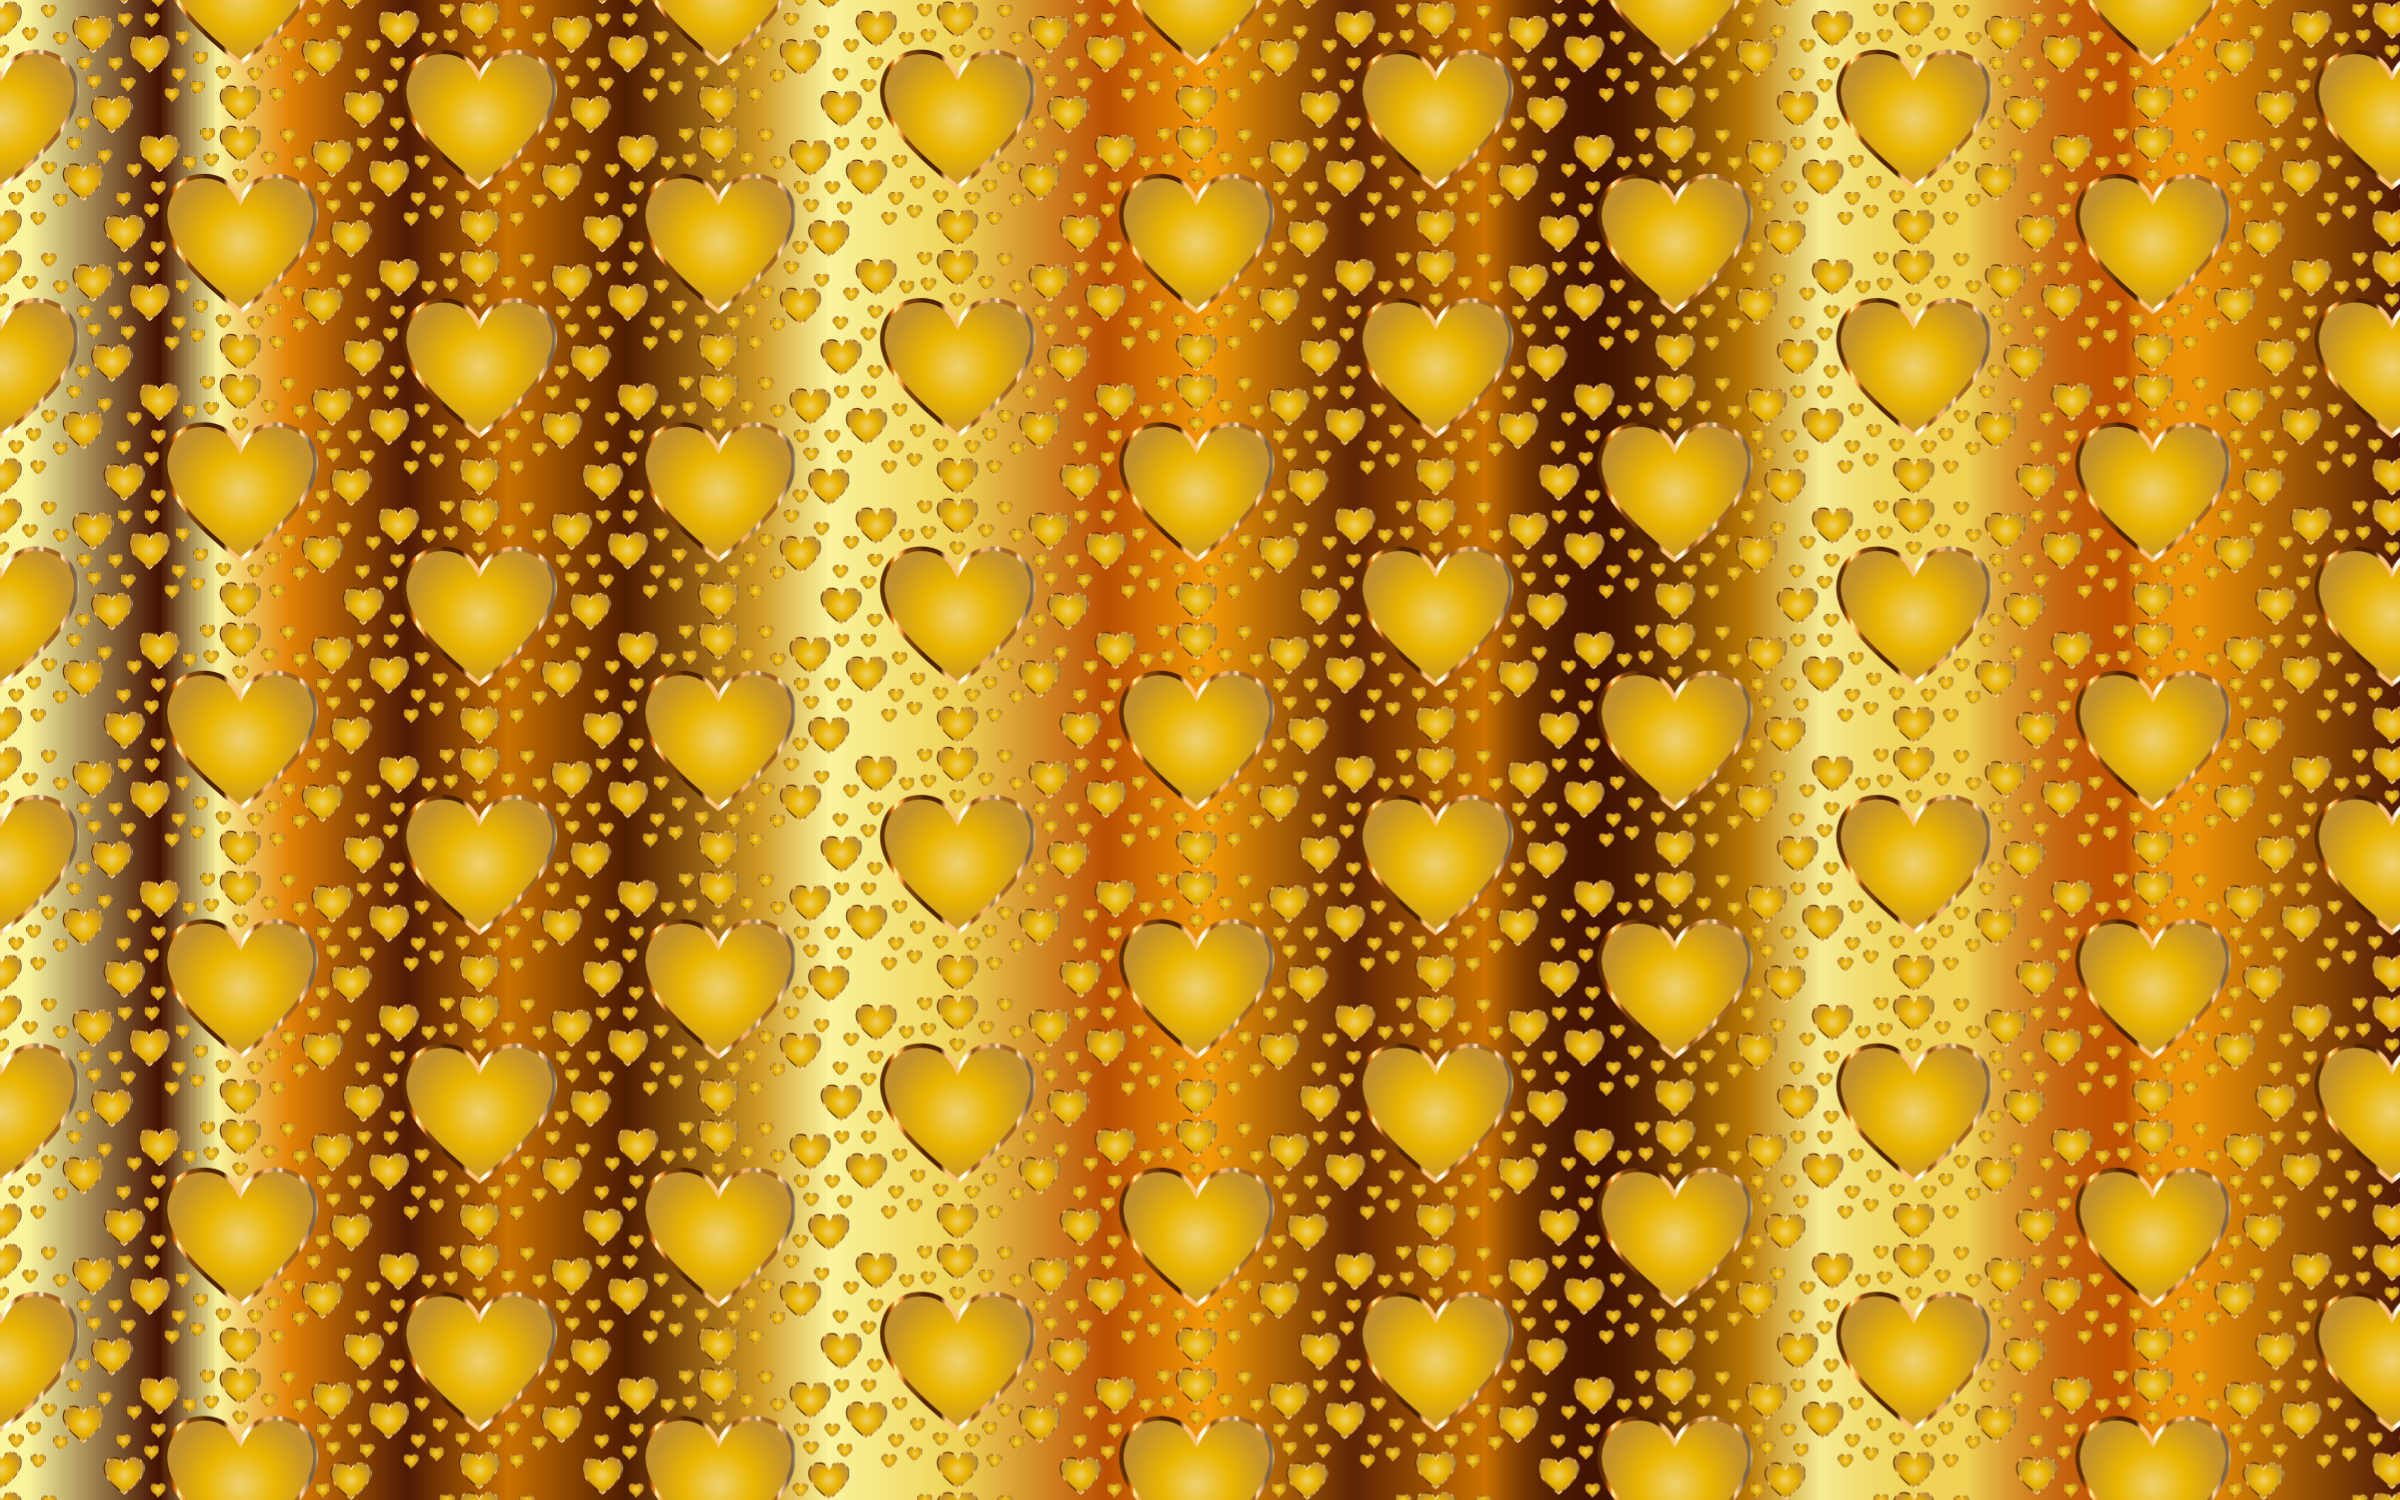 Seamless Gold Heart Pattern 3 by GDJ